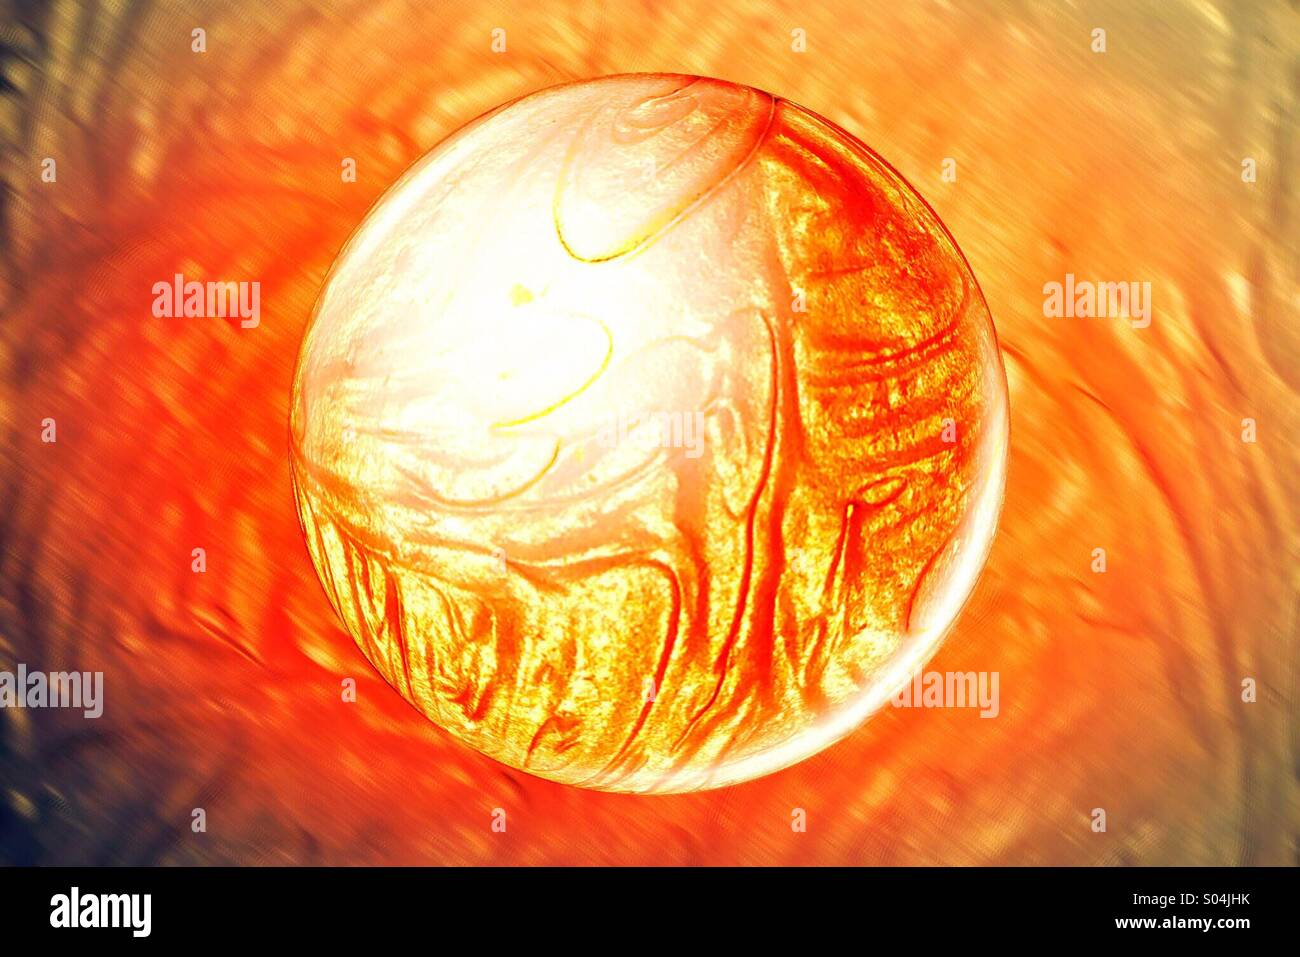 Red hot - Stock Image